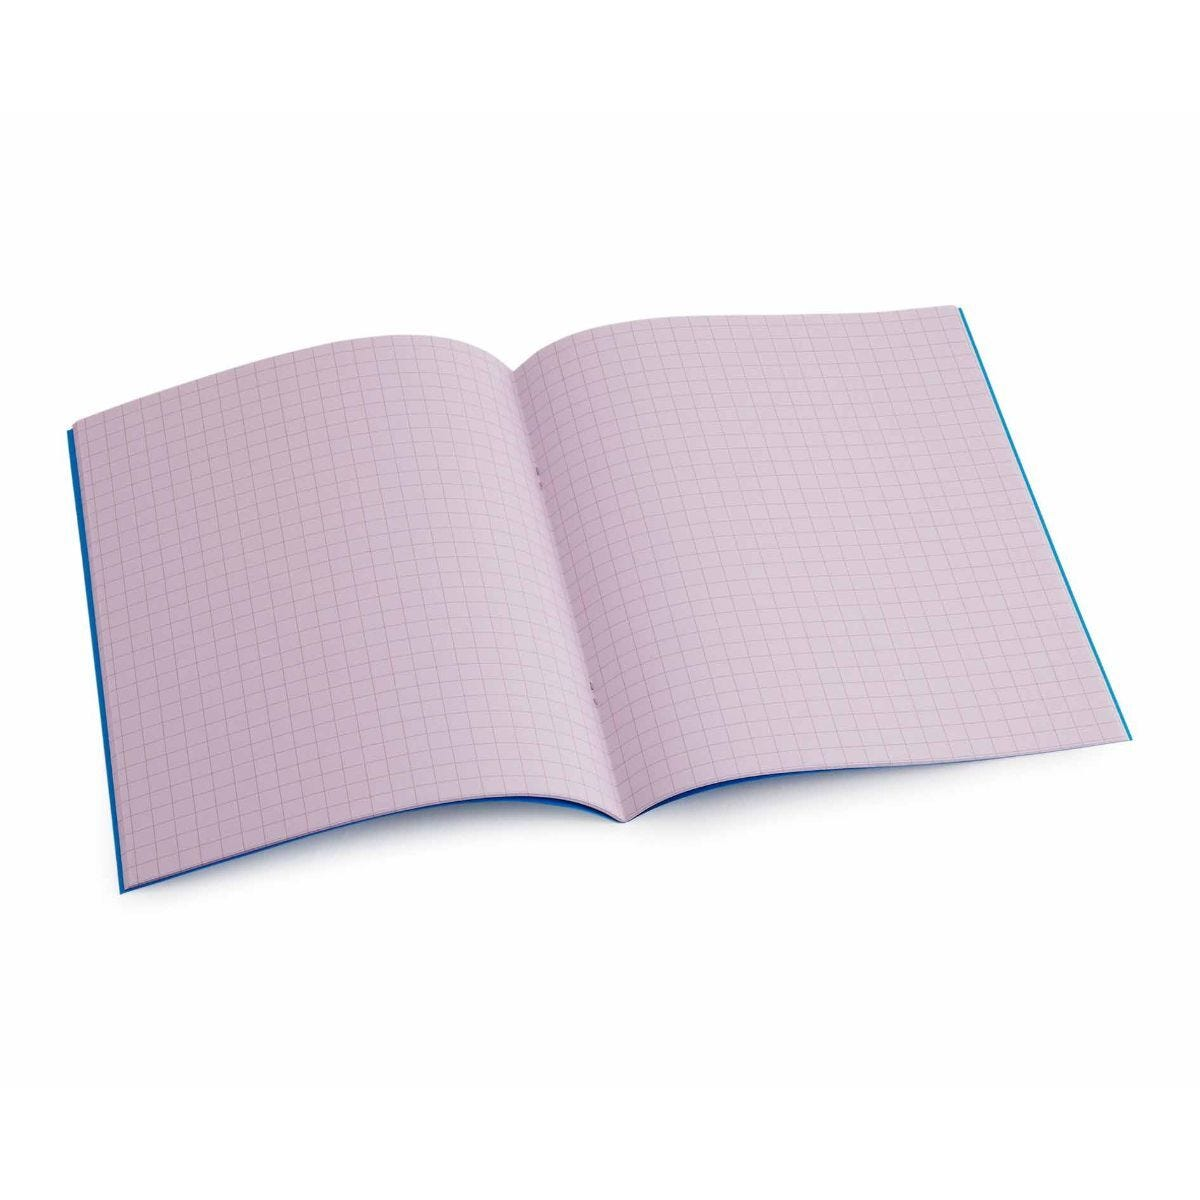 Tinted Exercise Book Standard 7x9 Squared 7.5mm Purple